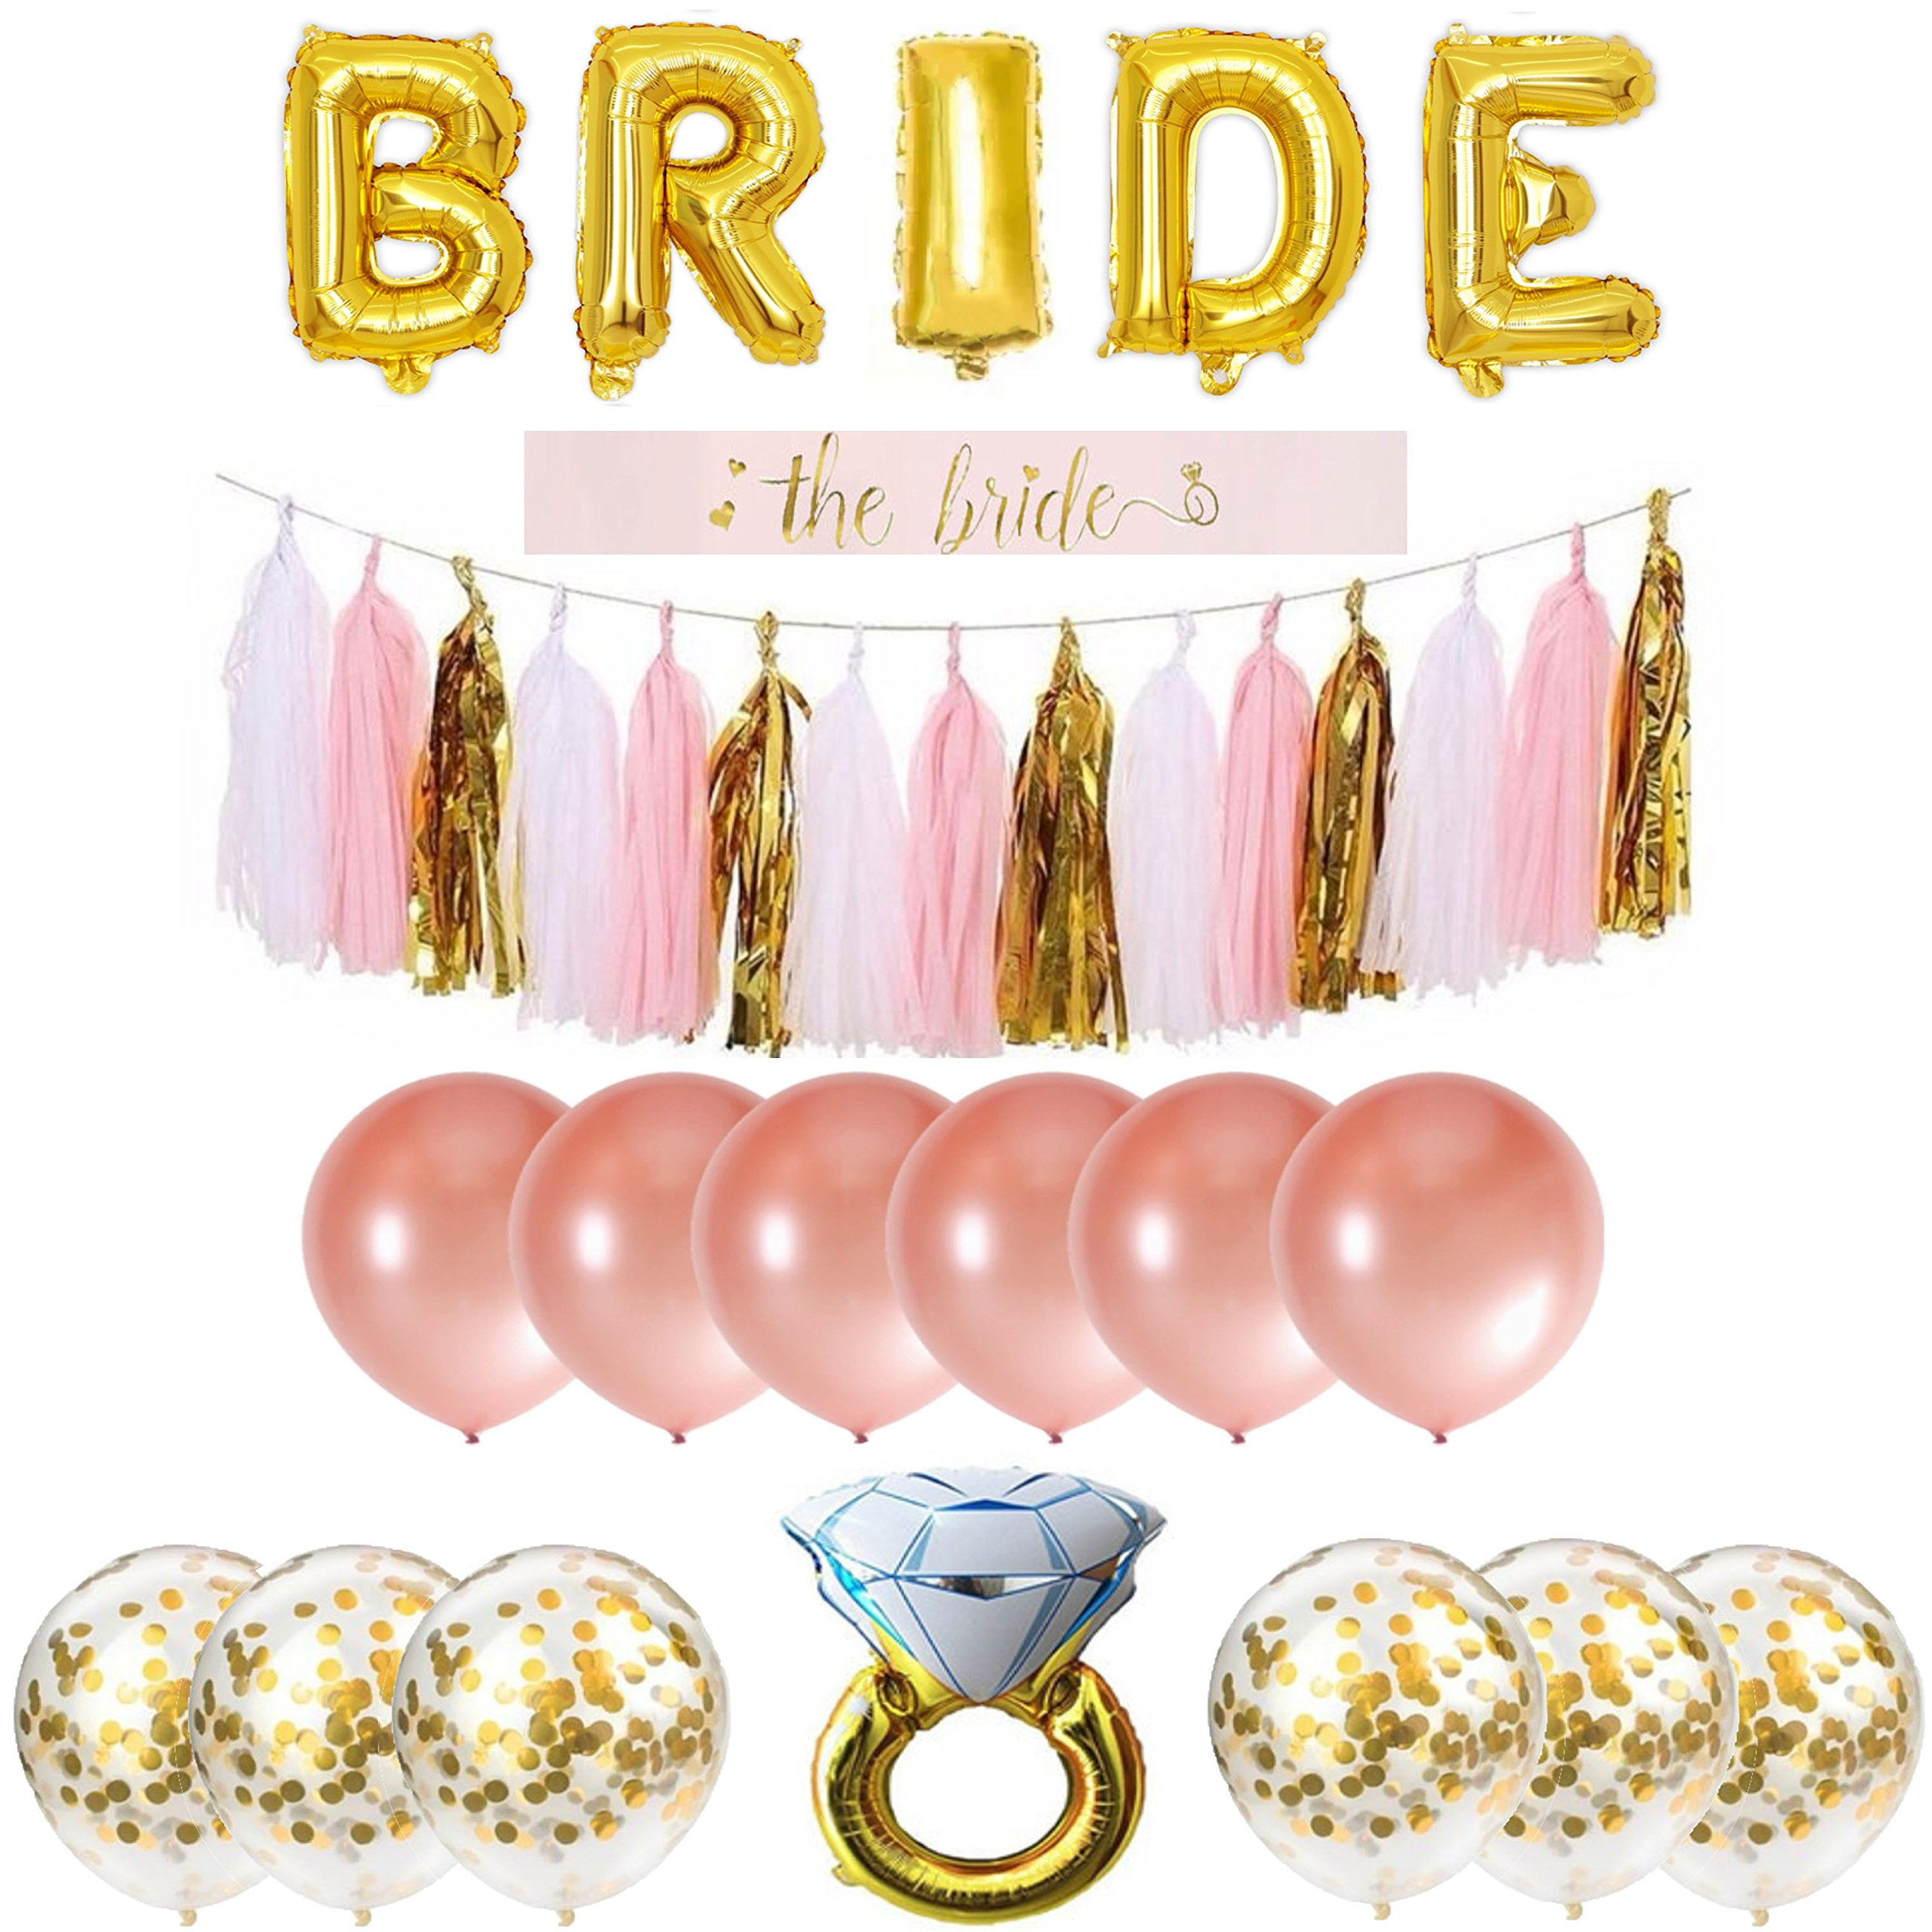 Bachelorette Party Decorations Pack Includes: Gold Foil Bride Balloon Banner Garland, Bride to be Sash + Rose Gold & Gold Confetti Balloons + Diamond Ring Balloon + Cute Bachelorette Tassel Banner  by Party Simple